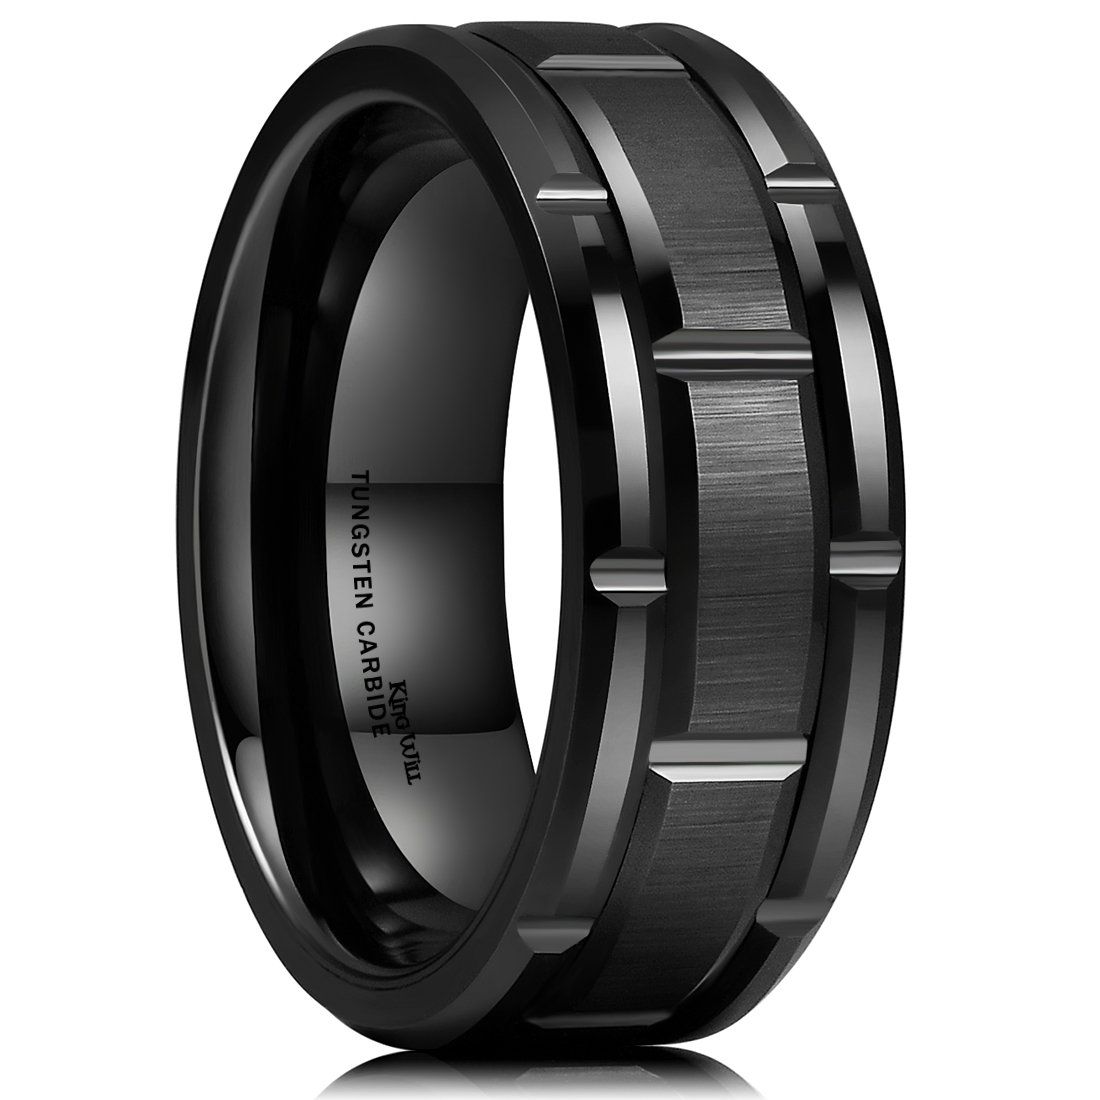 King Will Classic Mens 8mm Black Plated Tungsten Carbide Wedding Band Brick Pattern Brushed Finish(10) by King Will